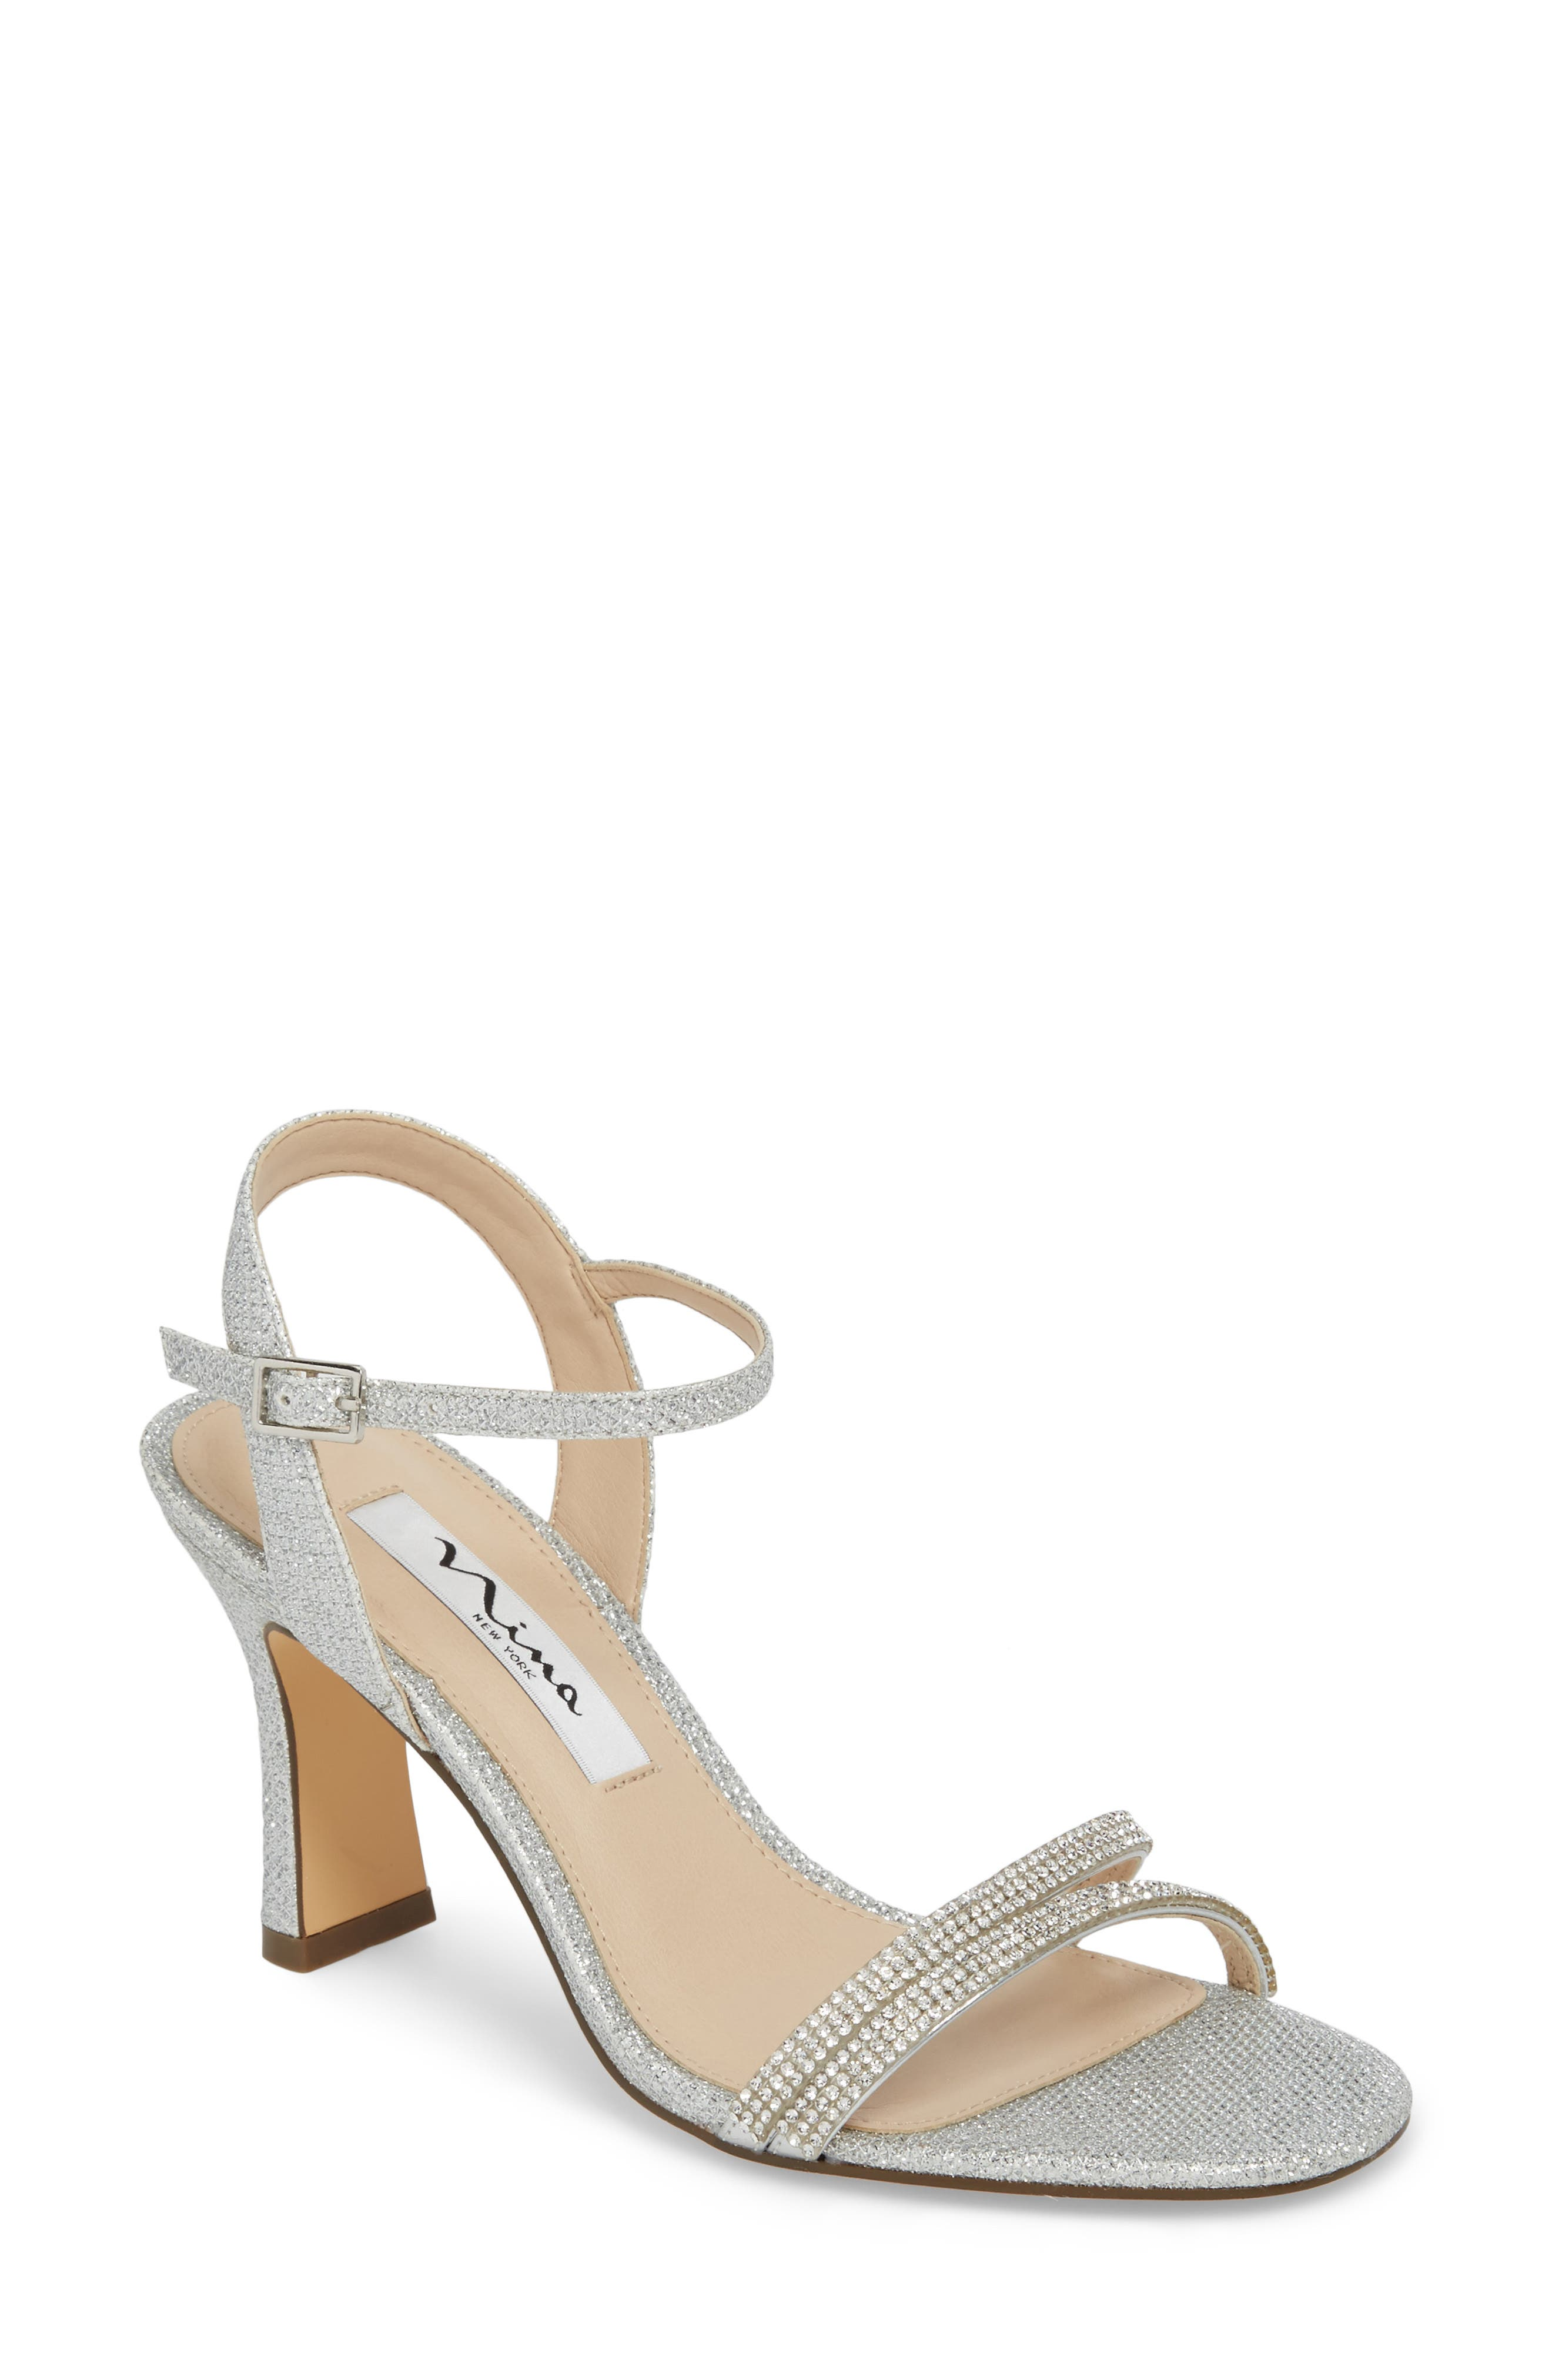 Avalon Ankle Strap Sandal,                             Main thumbnail 1, color,                             Silver Fabric